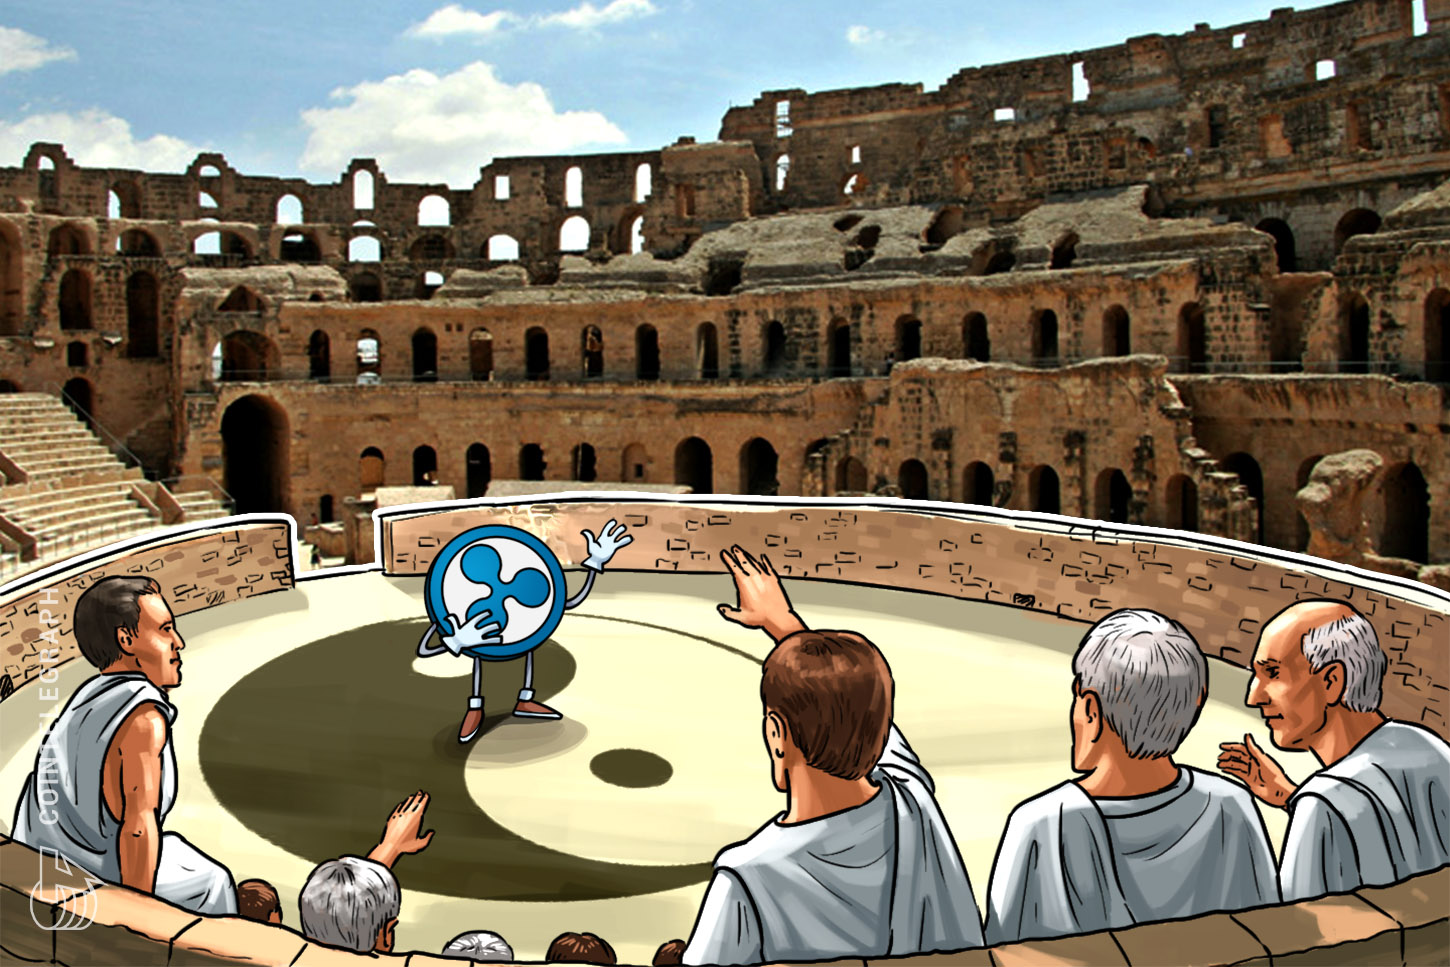 An ancient arena with Ripple